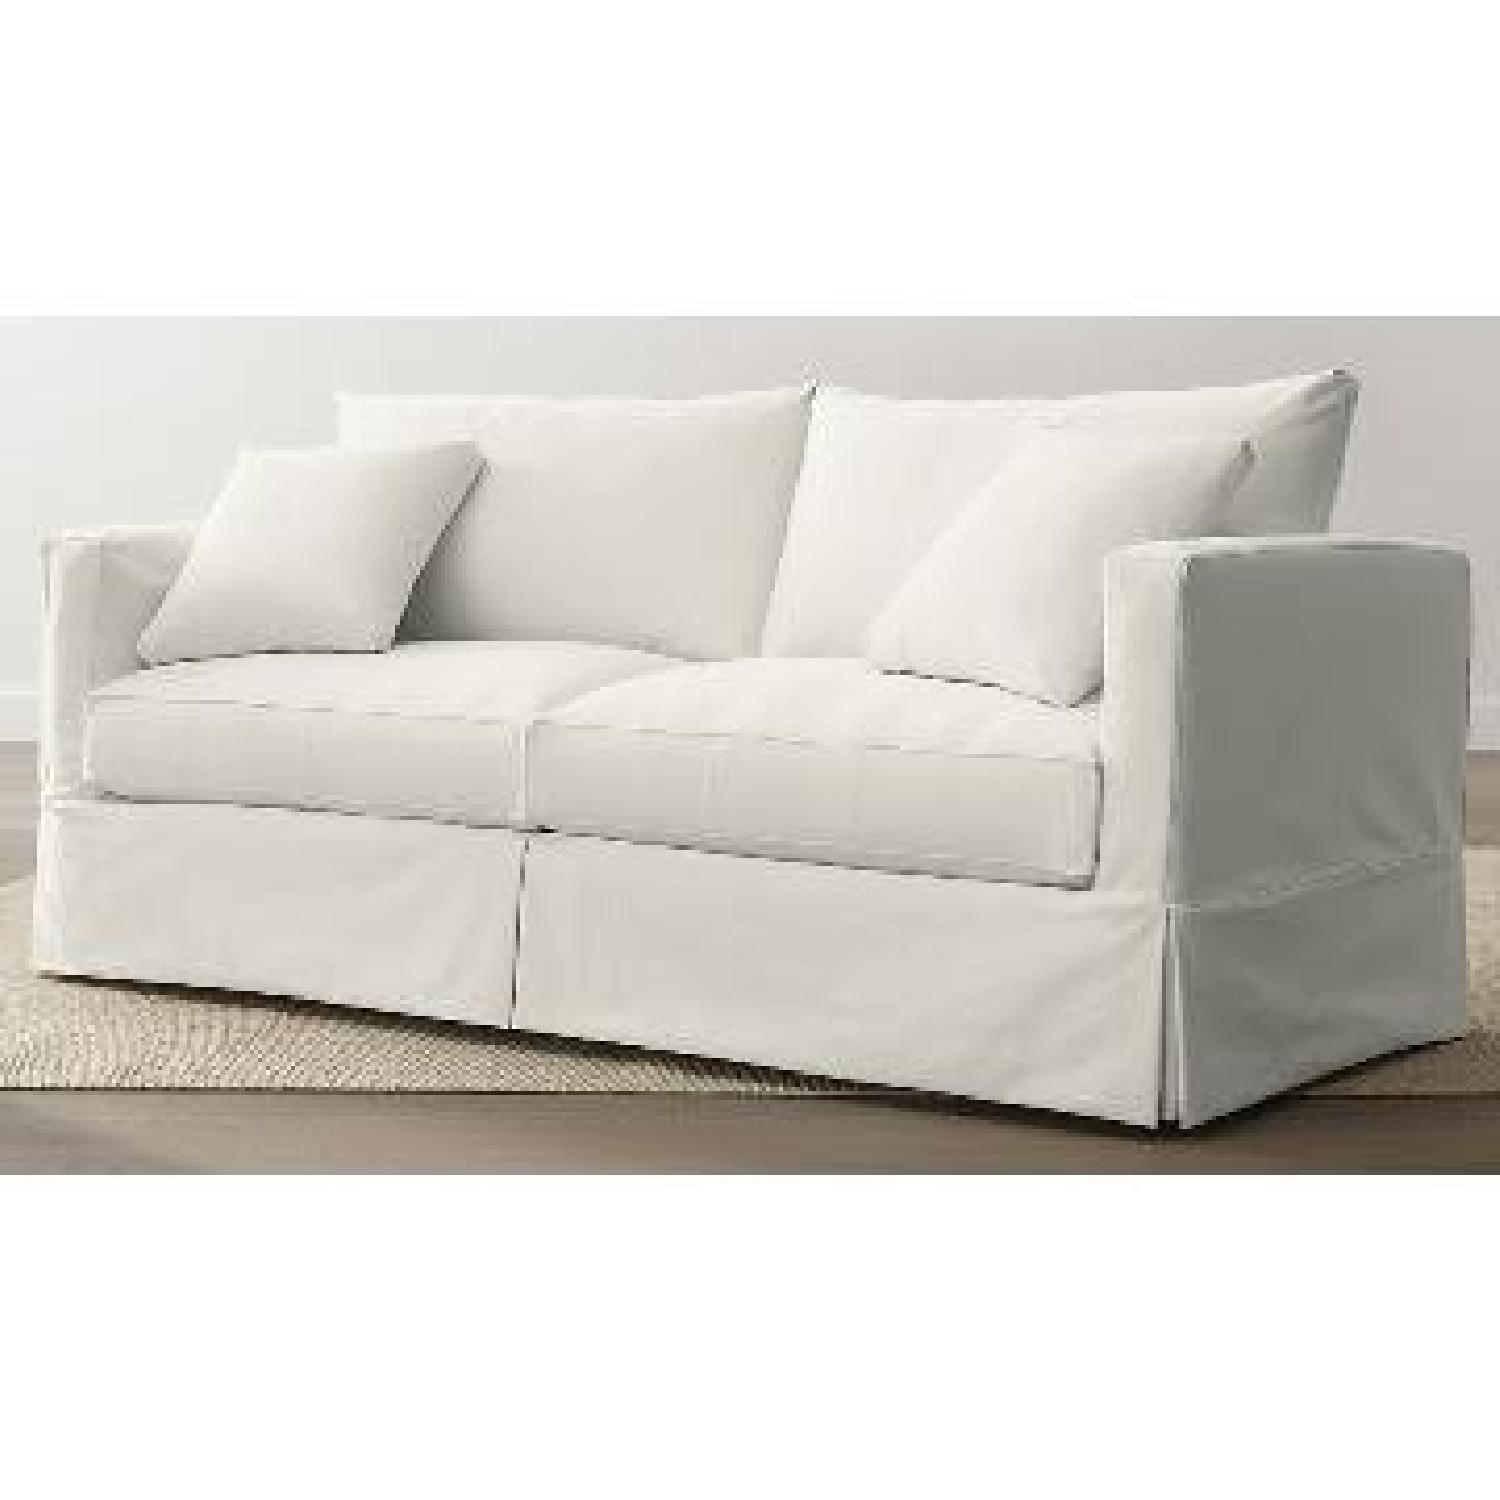 Crate & Barrel Willow Queen Sleeper Sofa - image-1